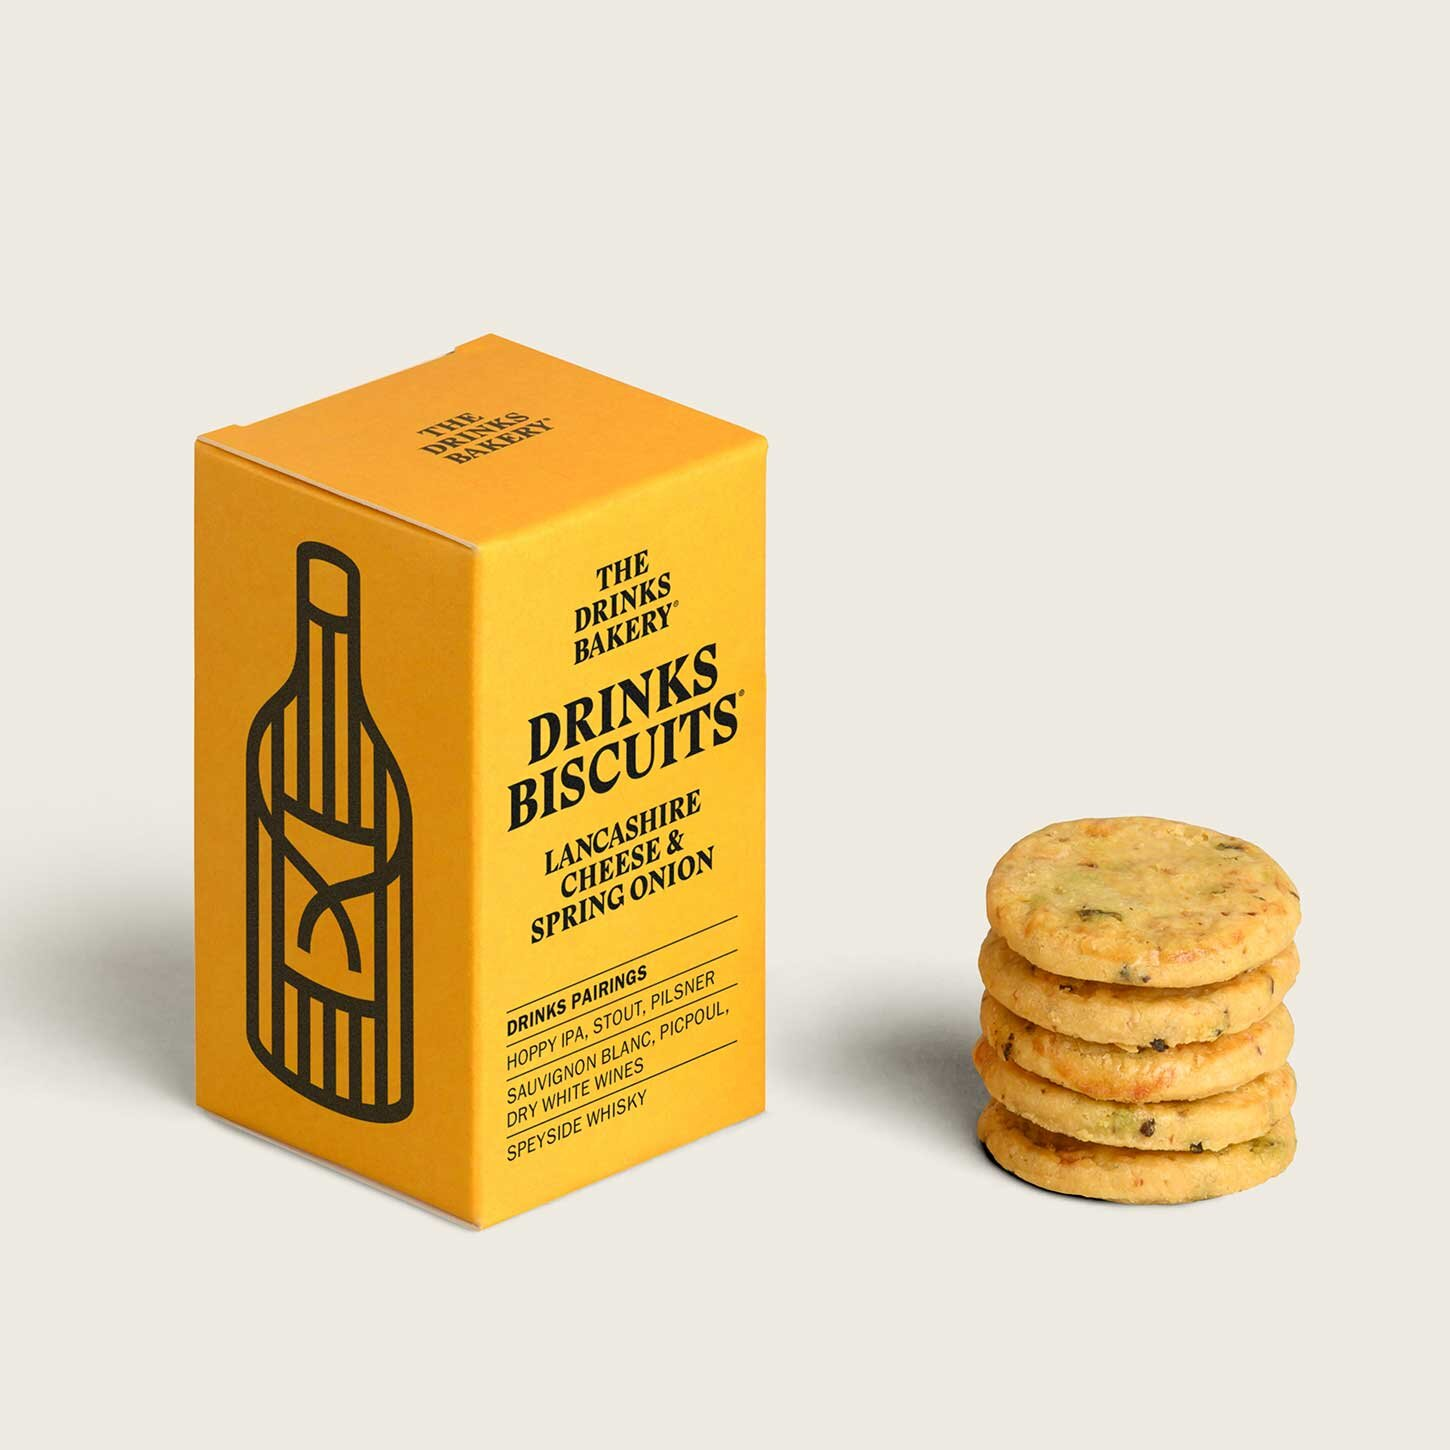 Drinks Bakery Drinks Biscuits - Lancashire Cheese and Spring Onion 36g